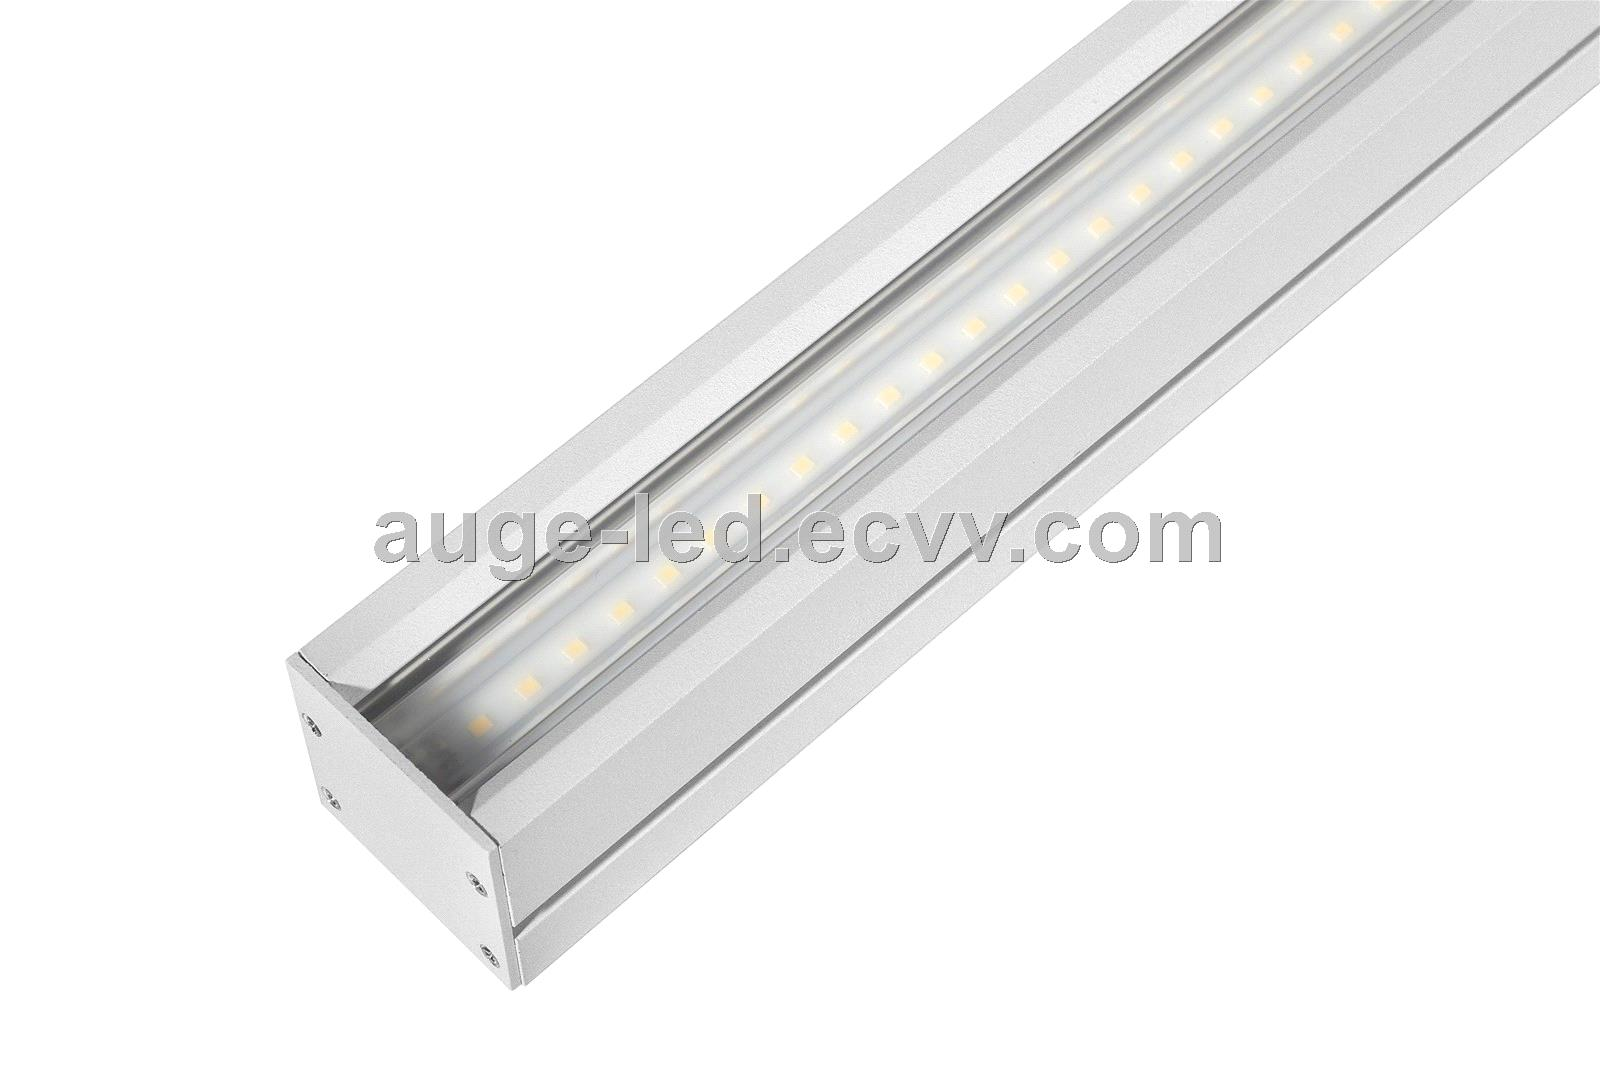 1.5m Linear Light 40W 60W for Office/Commercial, 5ft Linear Light with Optical Lens Design, Linkable Line System IP20